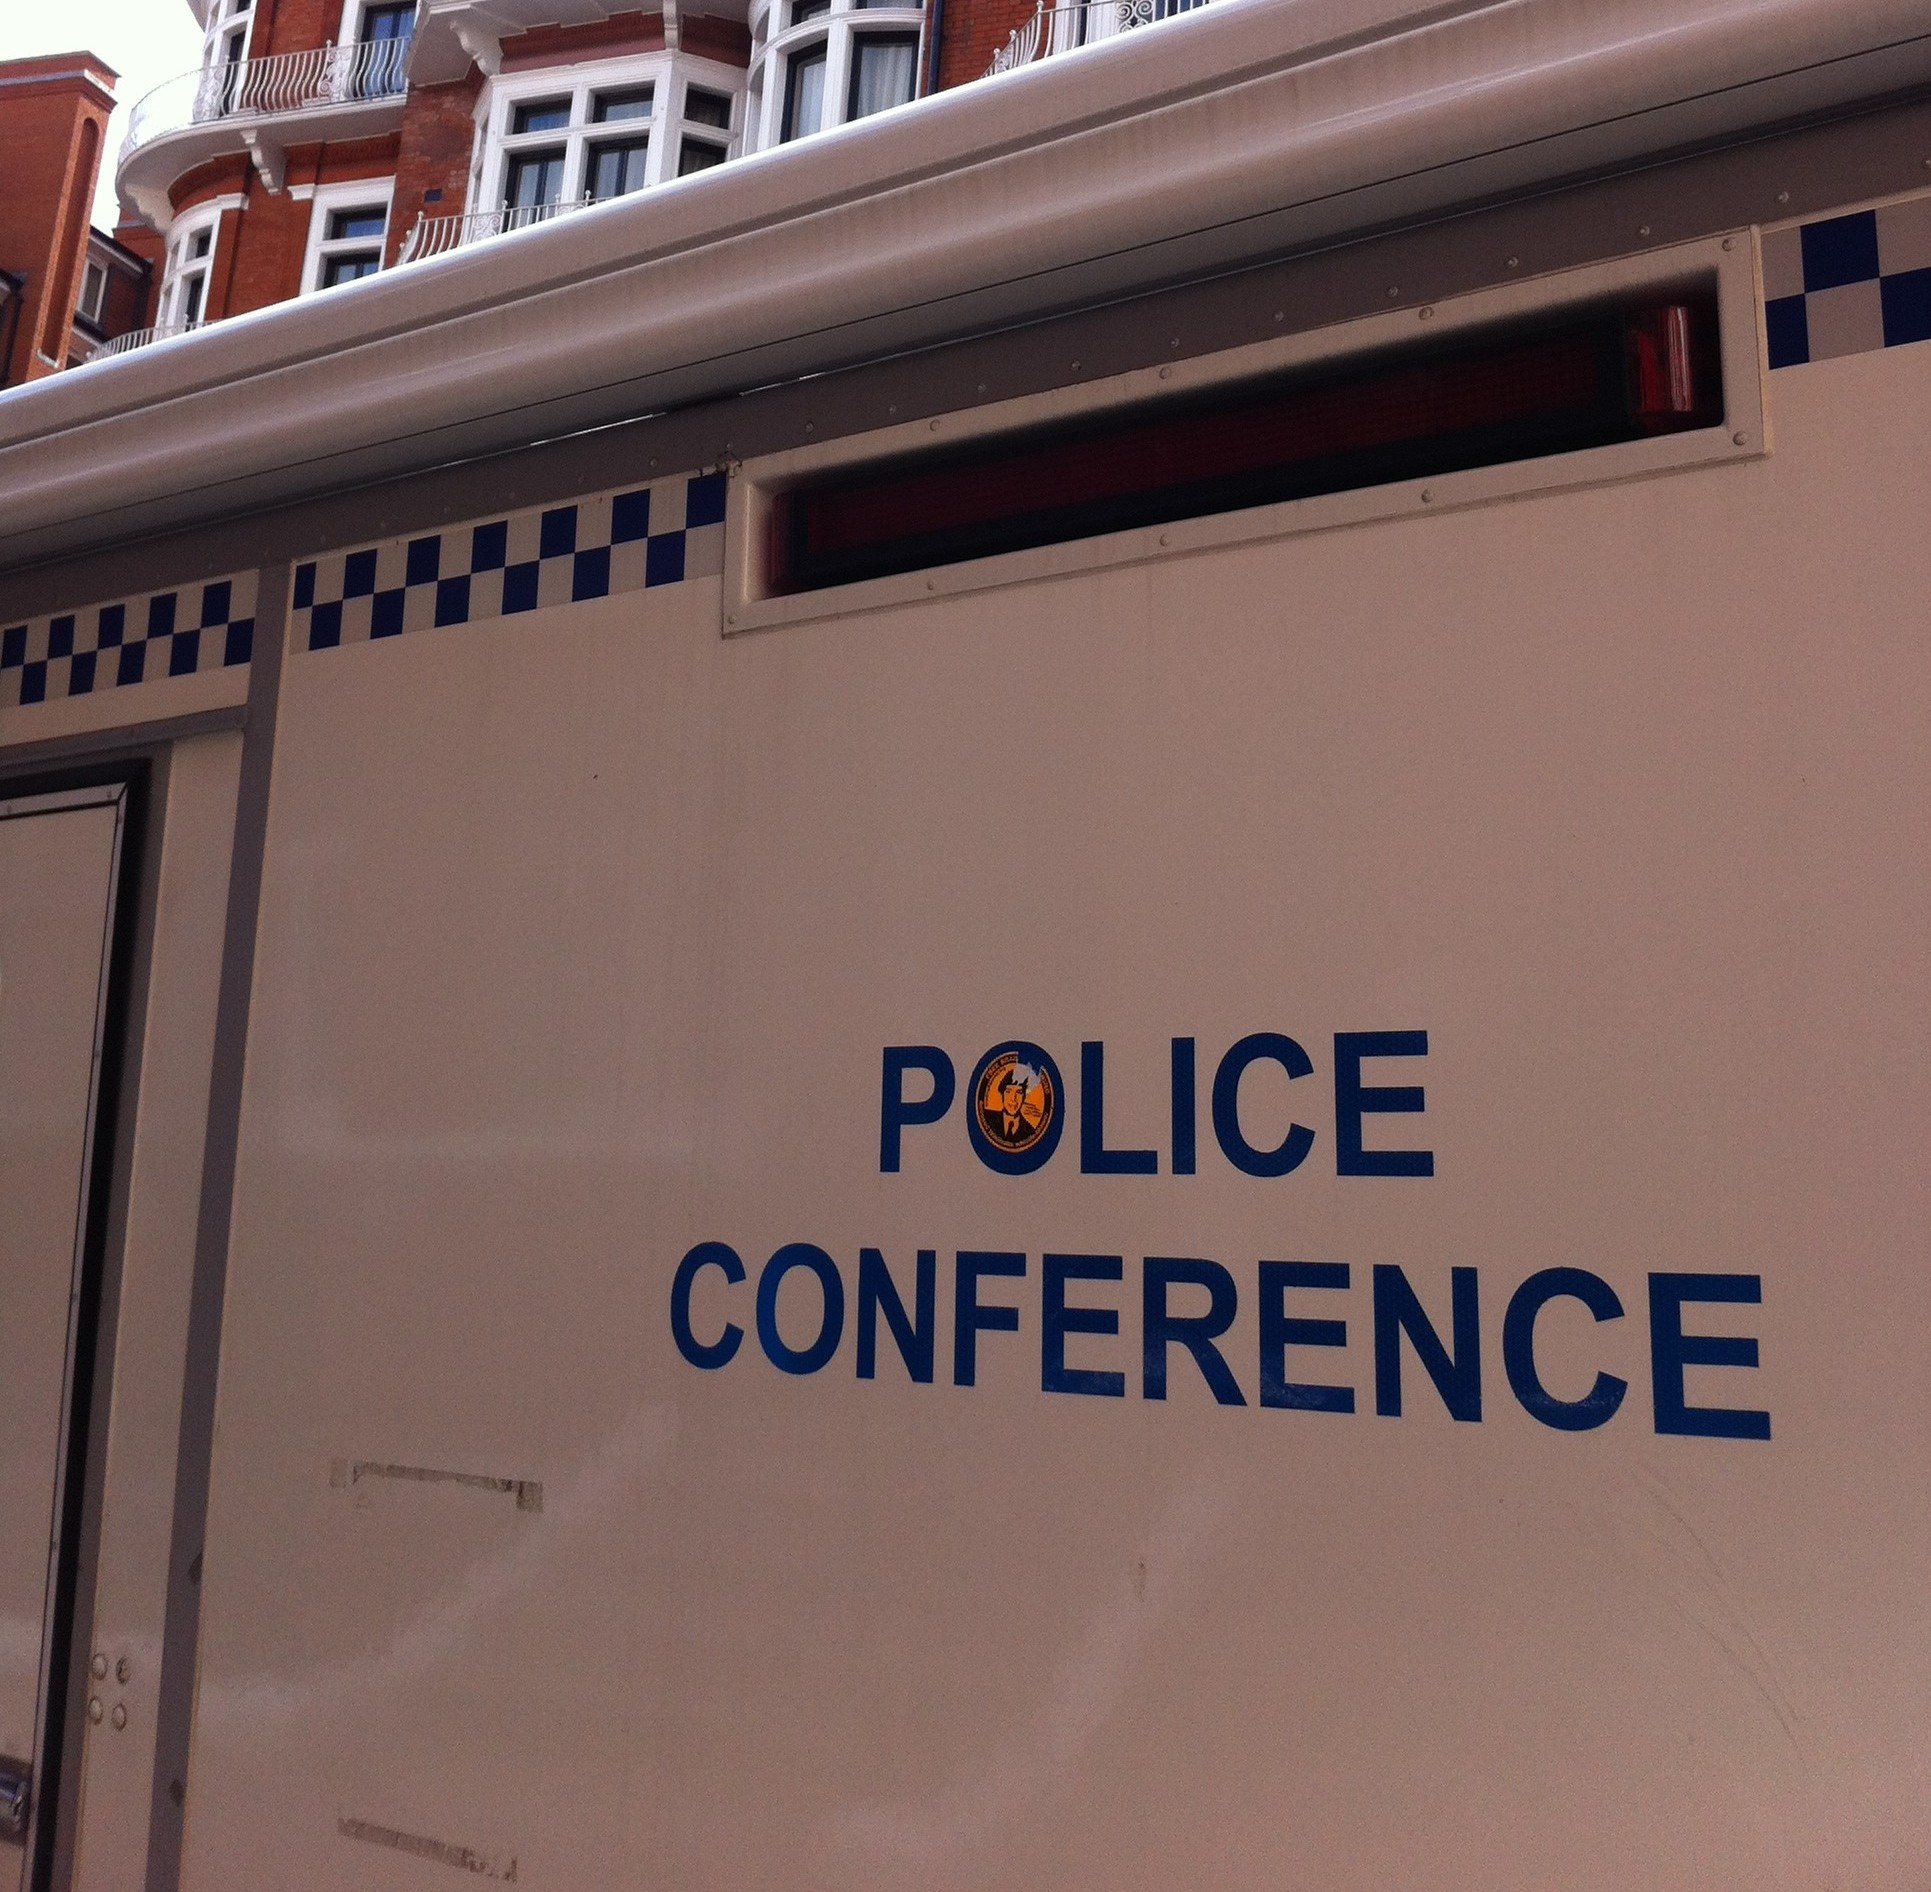 This police van was parked outside the Ecuadorian Embassy in London as of early February 2013.